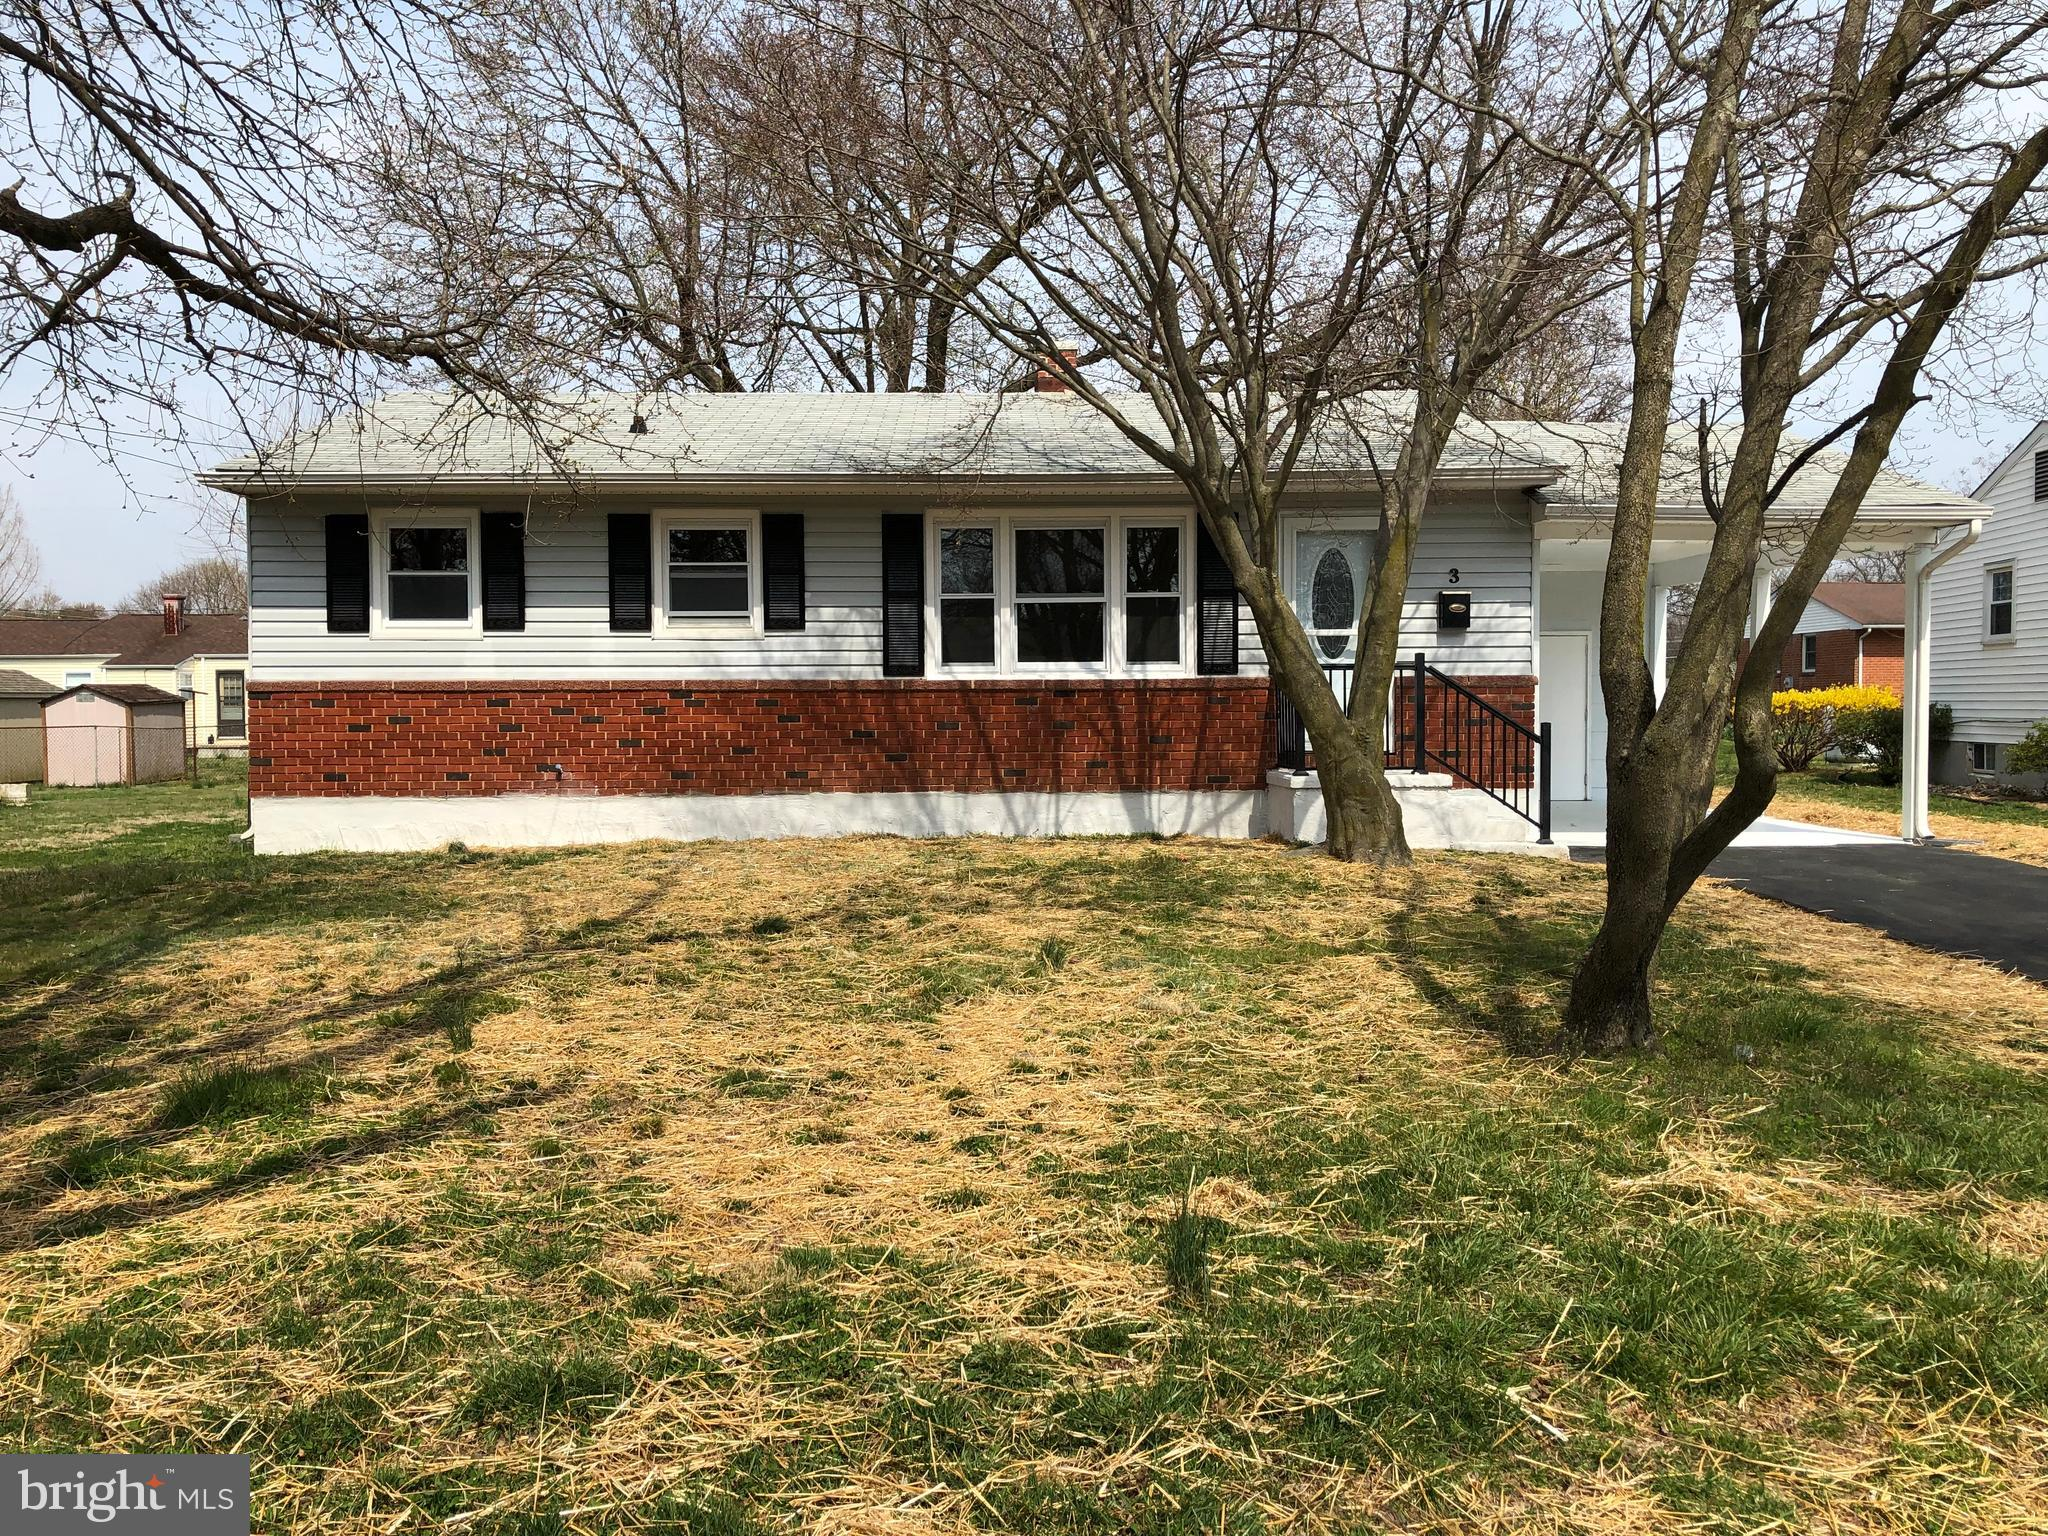 Come see this newly remodeled home. Equipped with stainless steel appliances, and a massive finished basement, you will be sure to love this home. Listing Agent is also the seller.